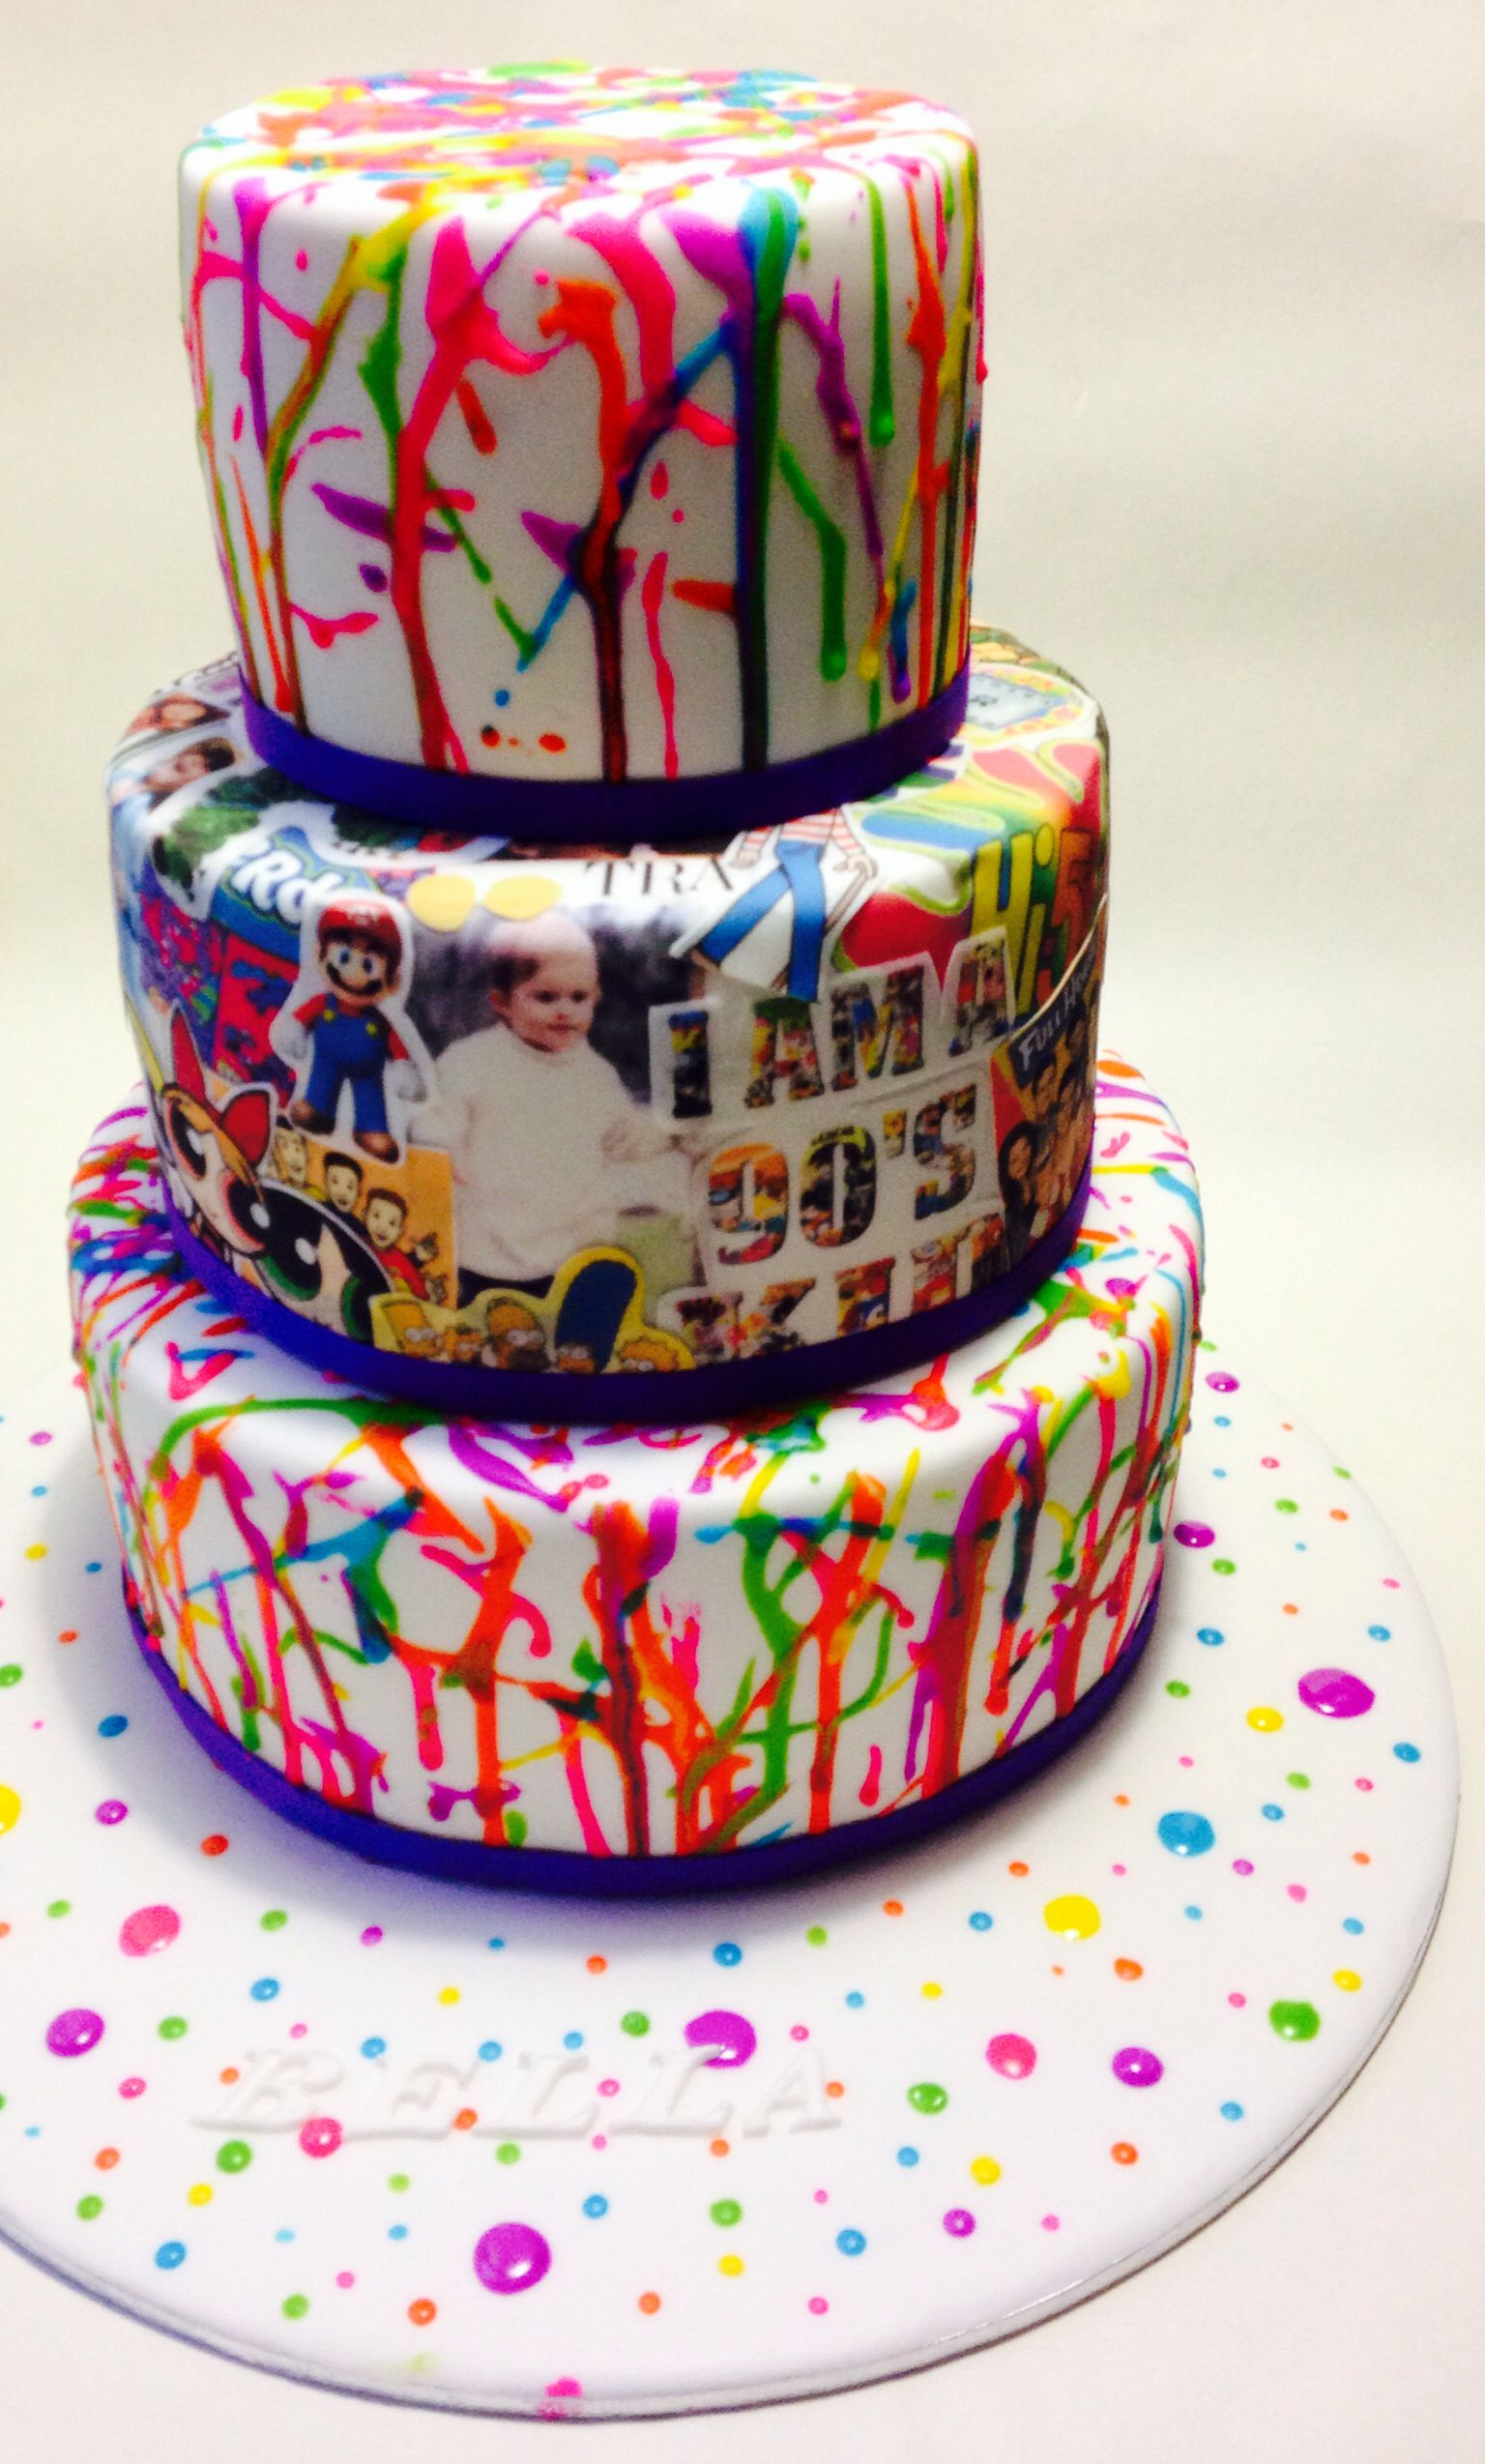 90s Themed 21st Birthday Cake 3 Tiered Mud Covered In Fondant And Neon Royal Icing Made By CakeAlicious Designs Sydney